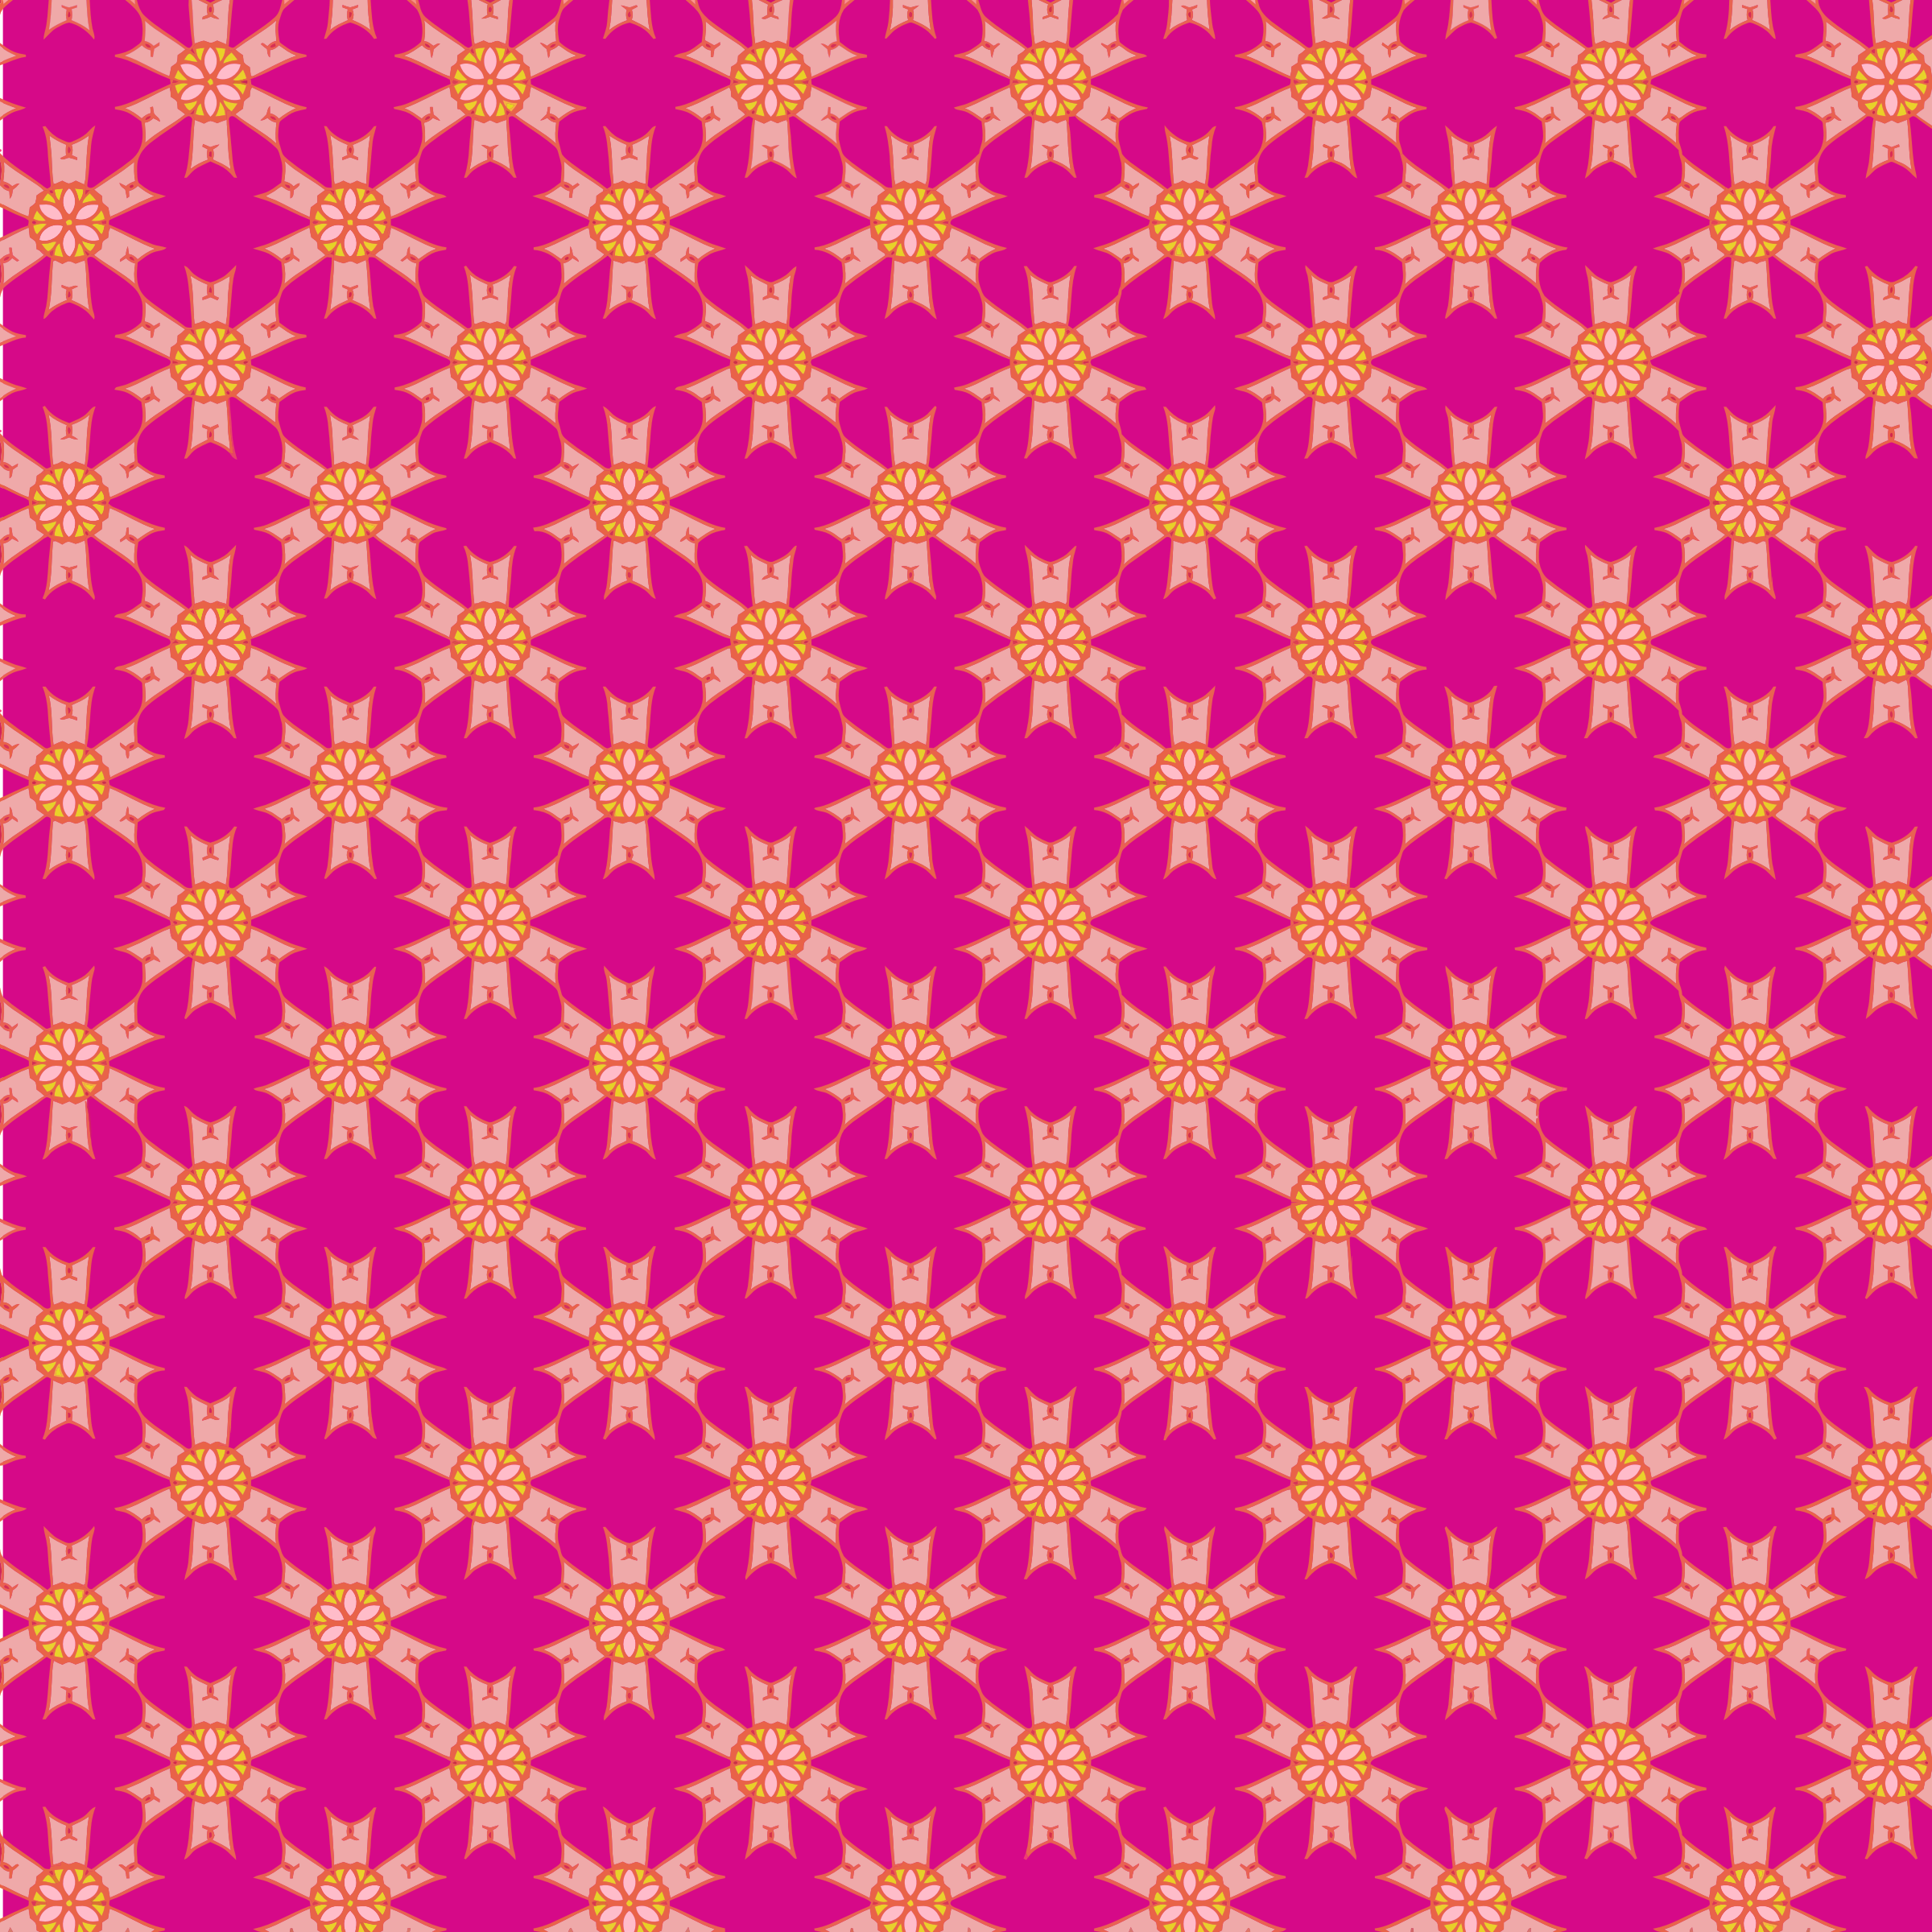 Floral Seamless Pattern 3 by GDJ